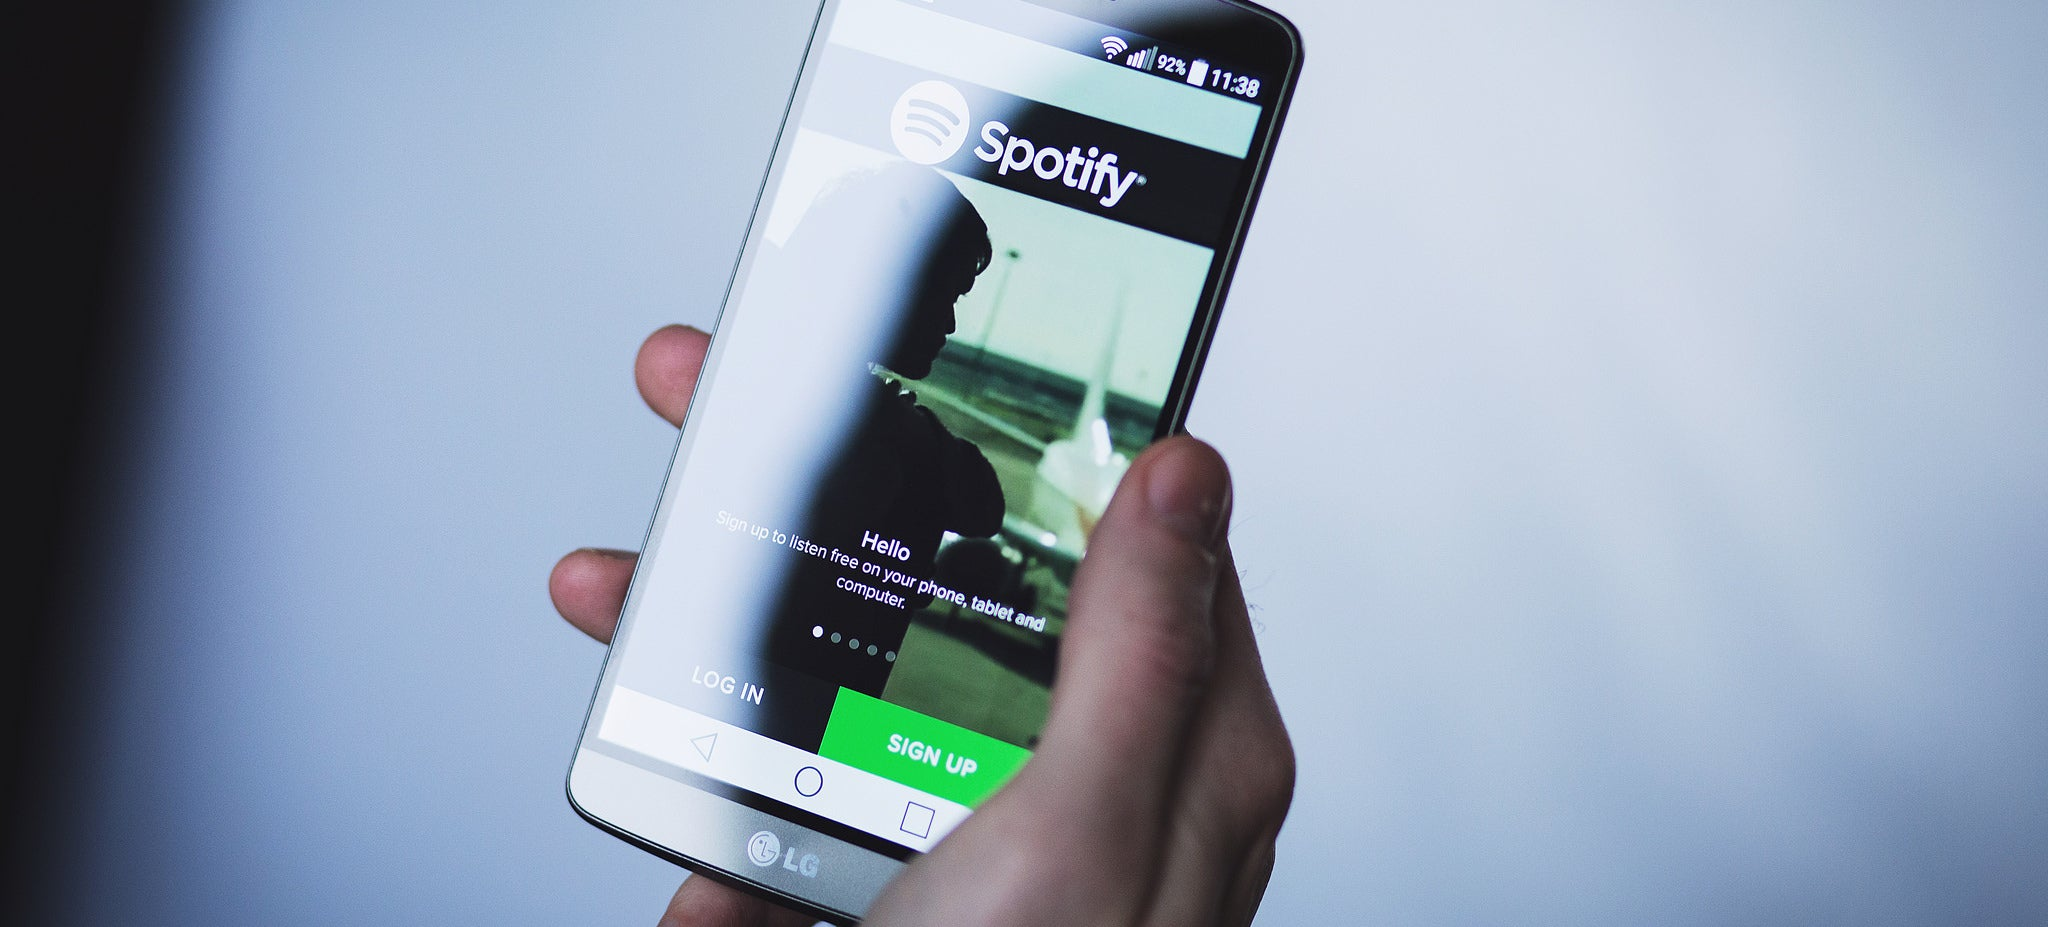 Spotify's New Video Streaming Said To Be 'Starting This Week'